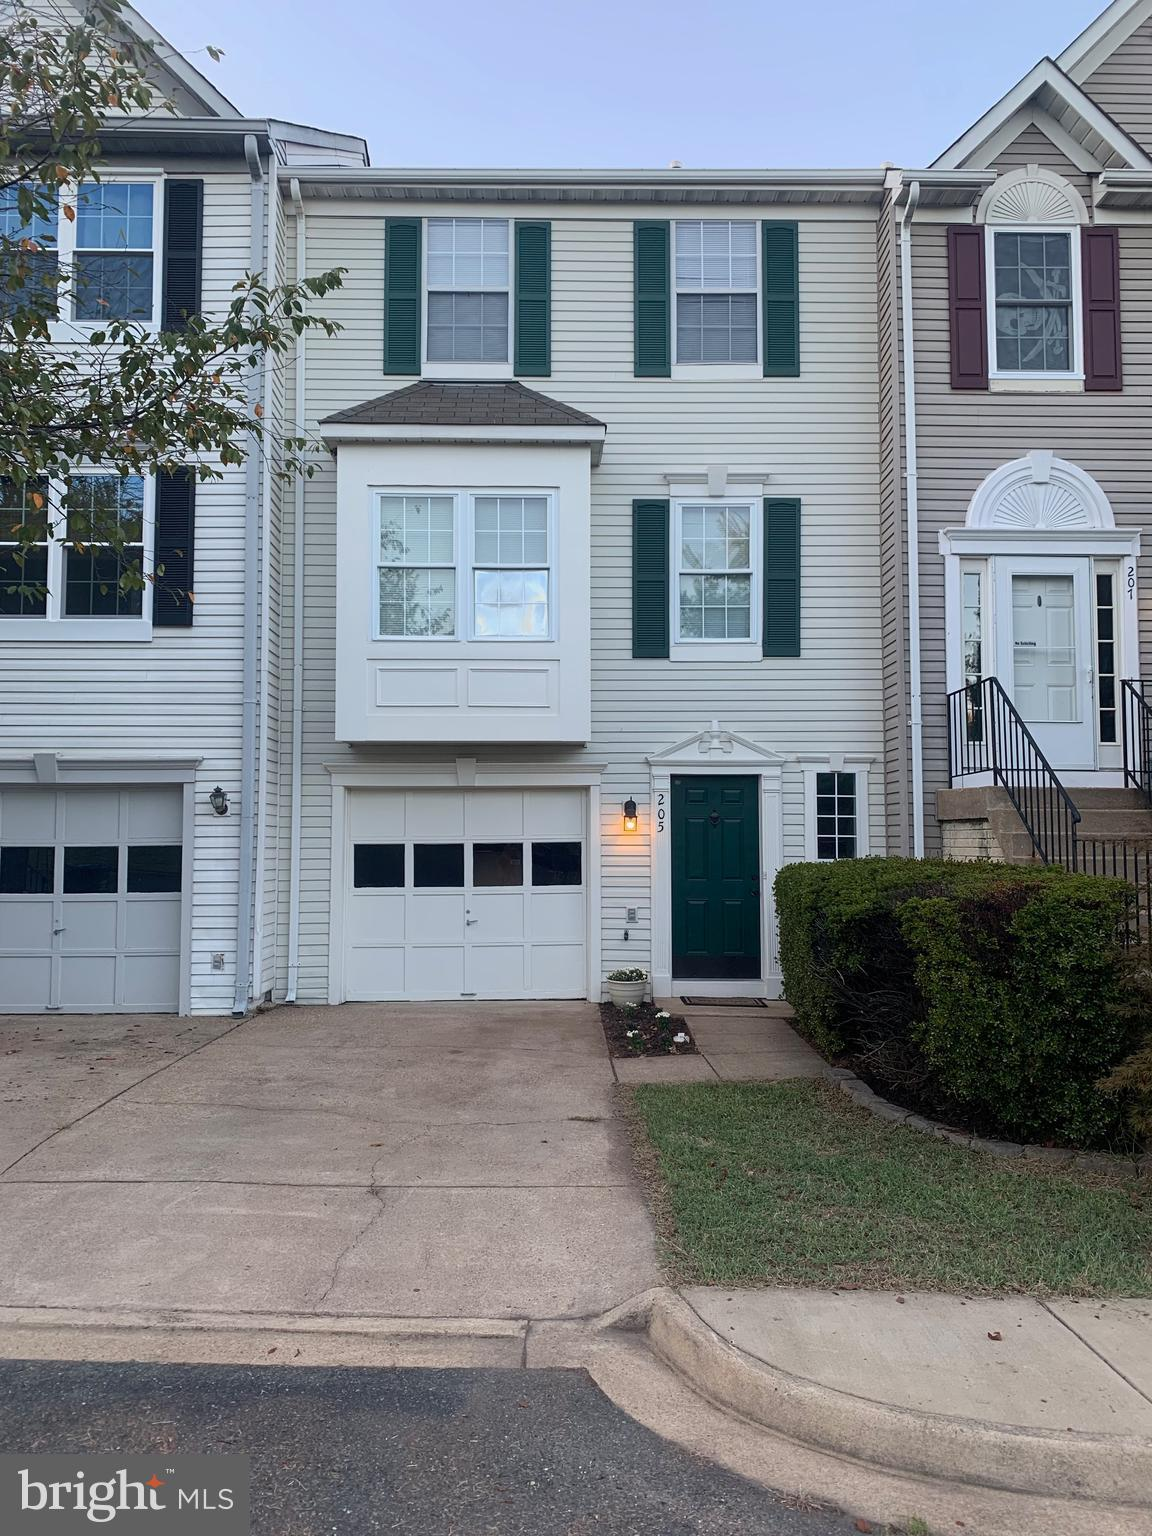 Beautiful townhome in Spring Knoll! 2 Bedroom and 2.5 Bathrooms. Basement can be used as 3rd